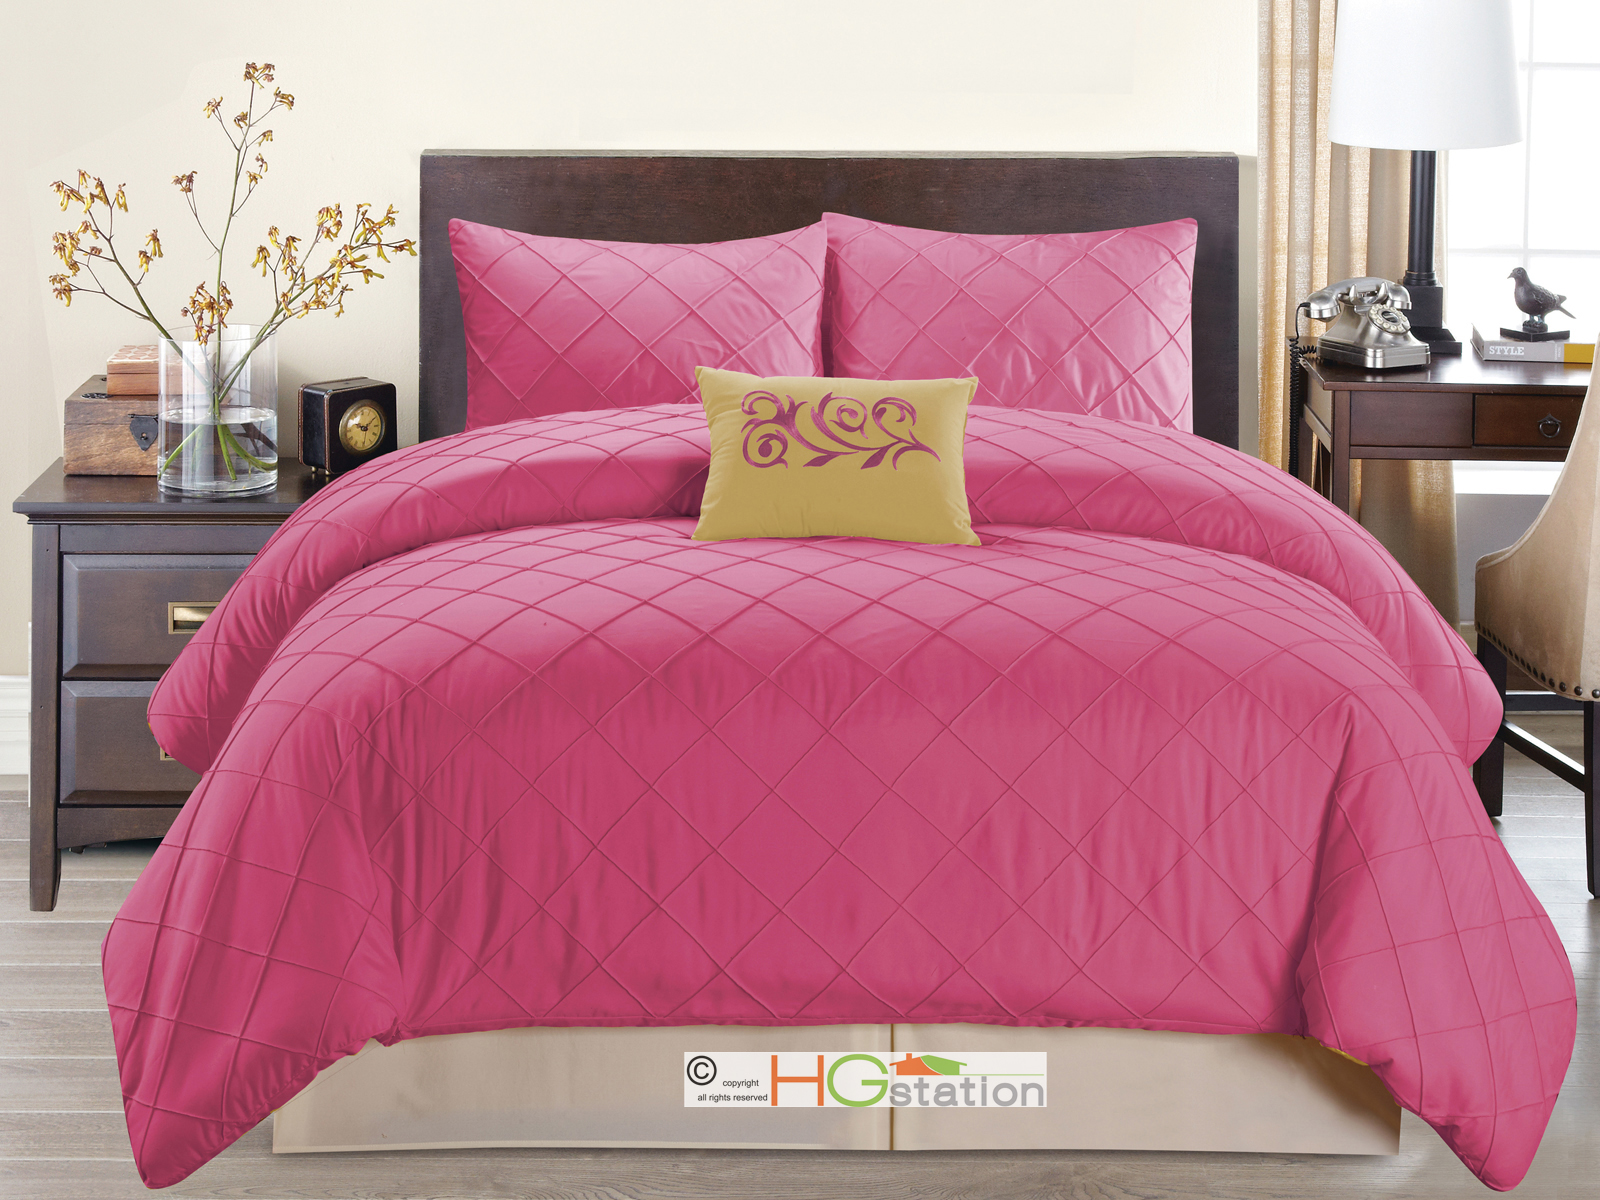 4 pc diamond pleated pintuck comforter set embroidered for Hot pink bedroom set